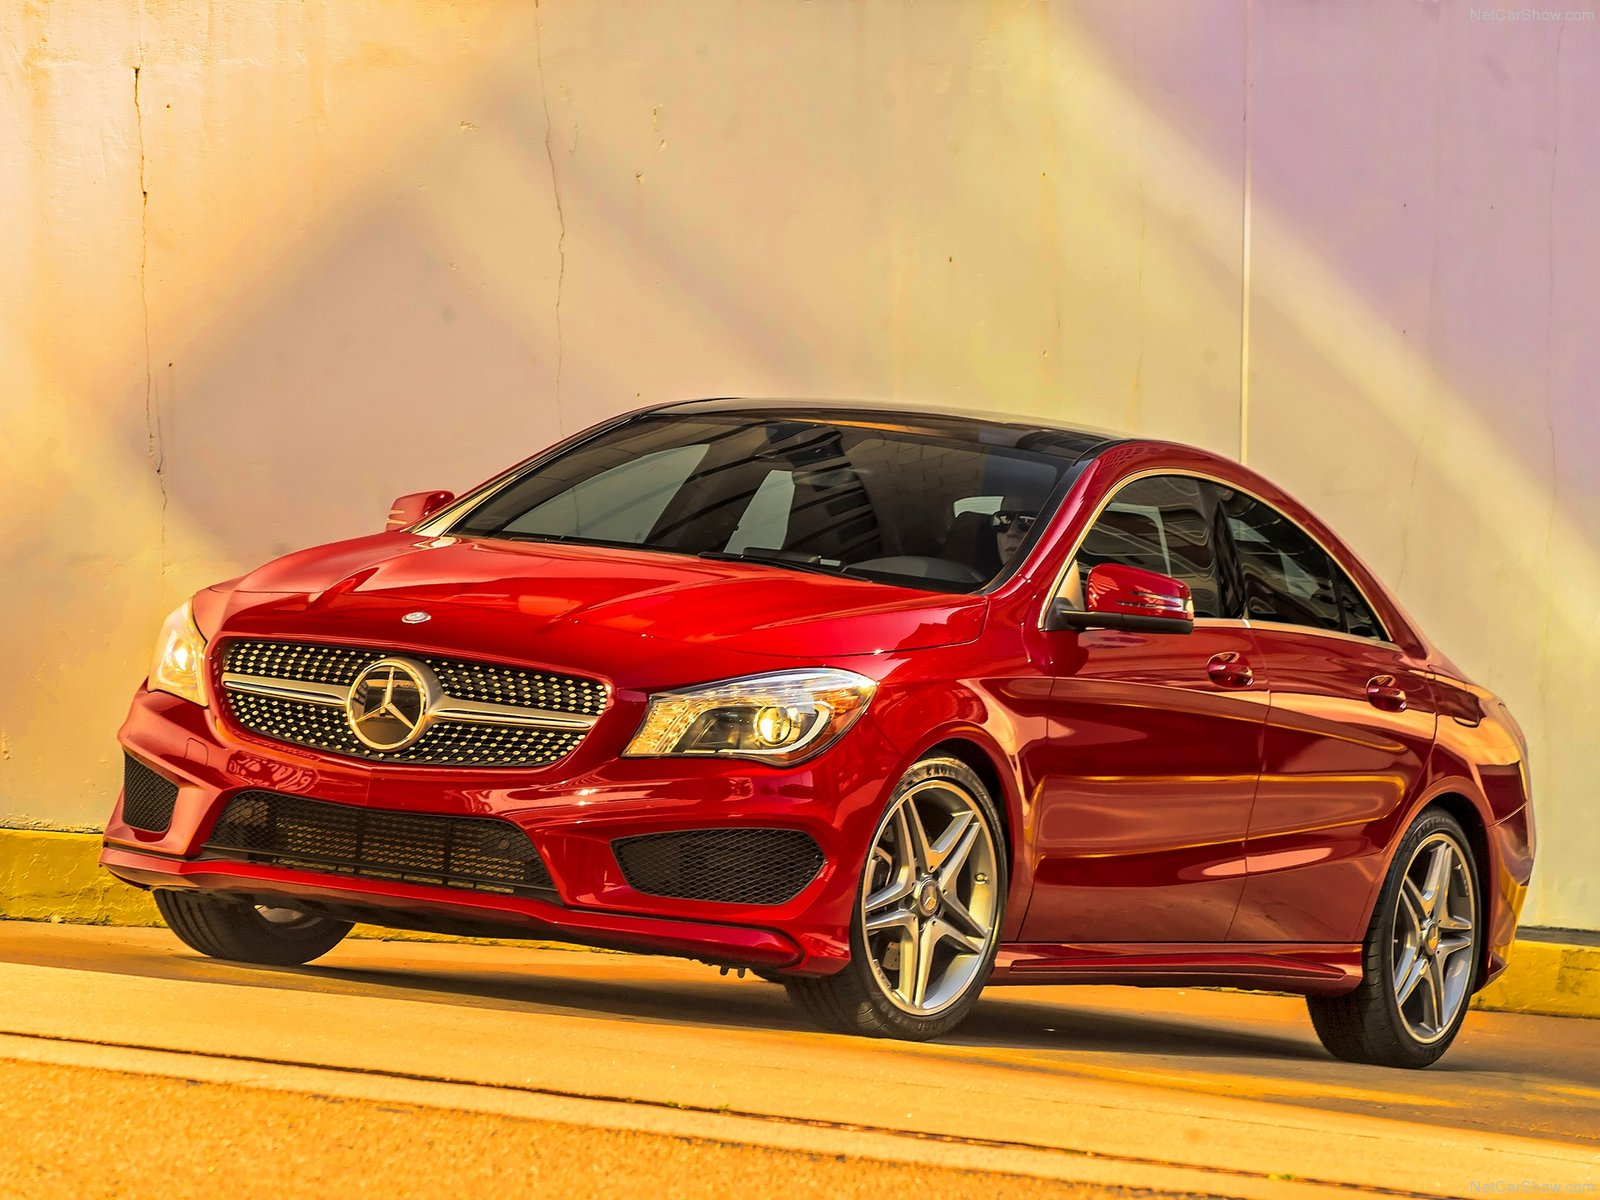 mercedes benz cla 250 sport photos photogallery with 67 pics. Black Bedroom Furniture Sets. Home Design Ideas